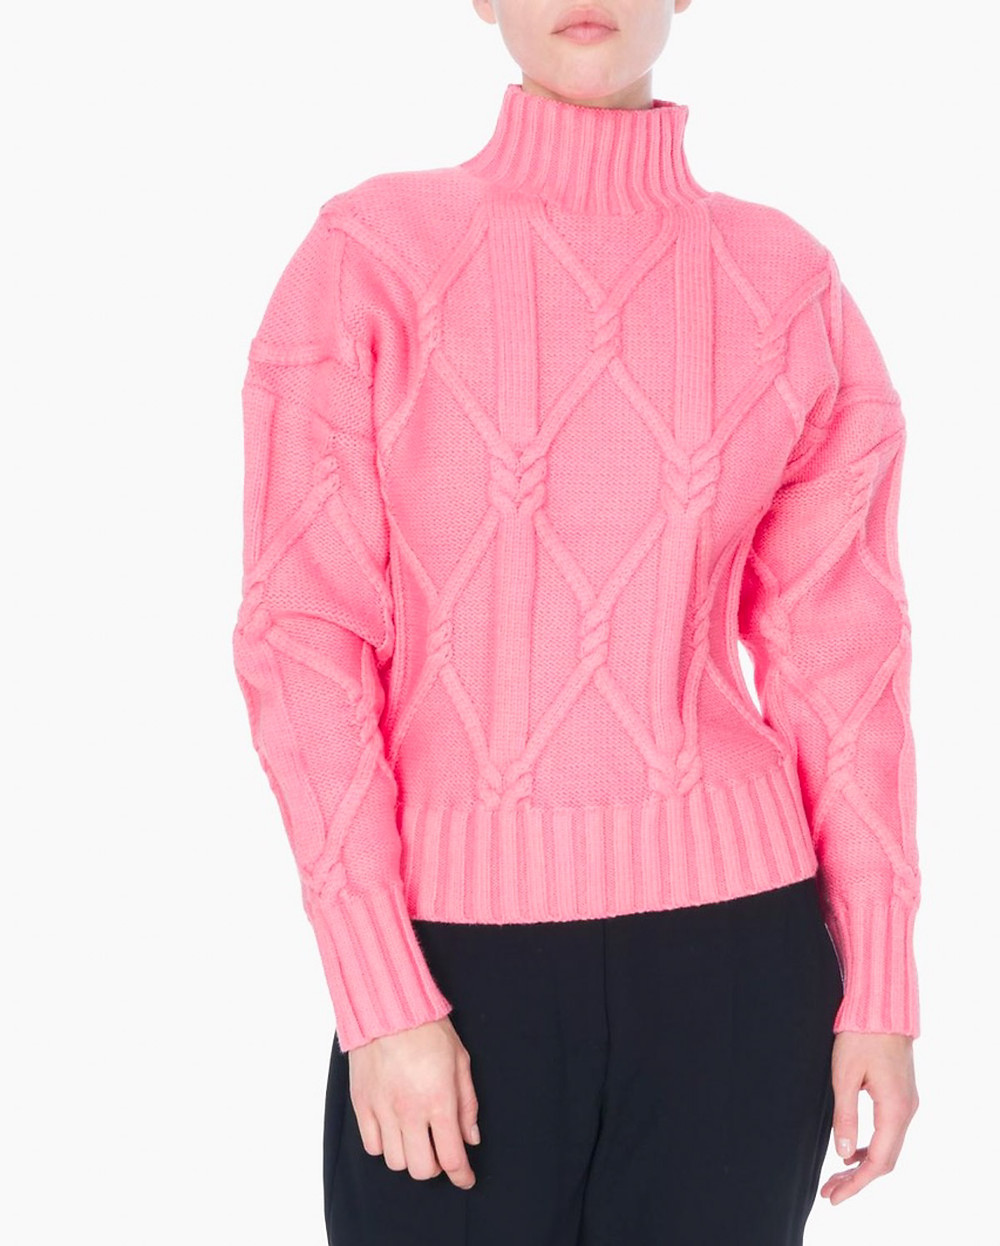 Pullover J.Crew Pink